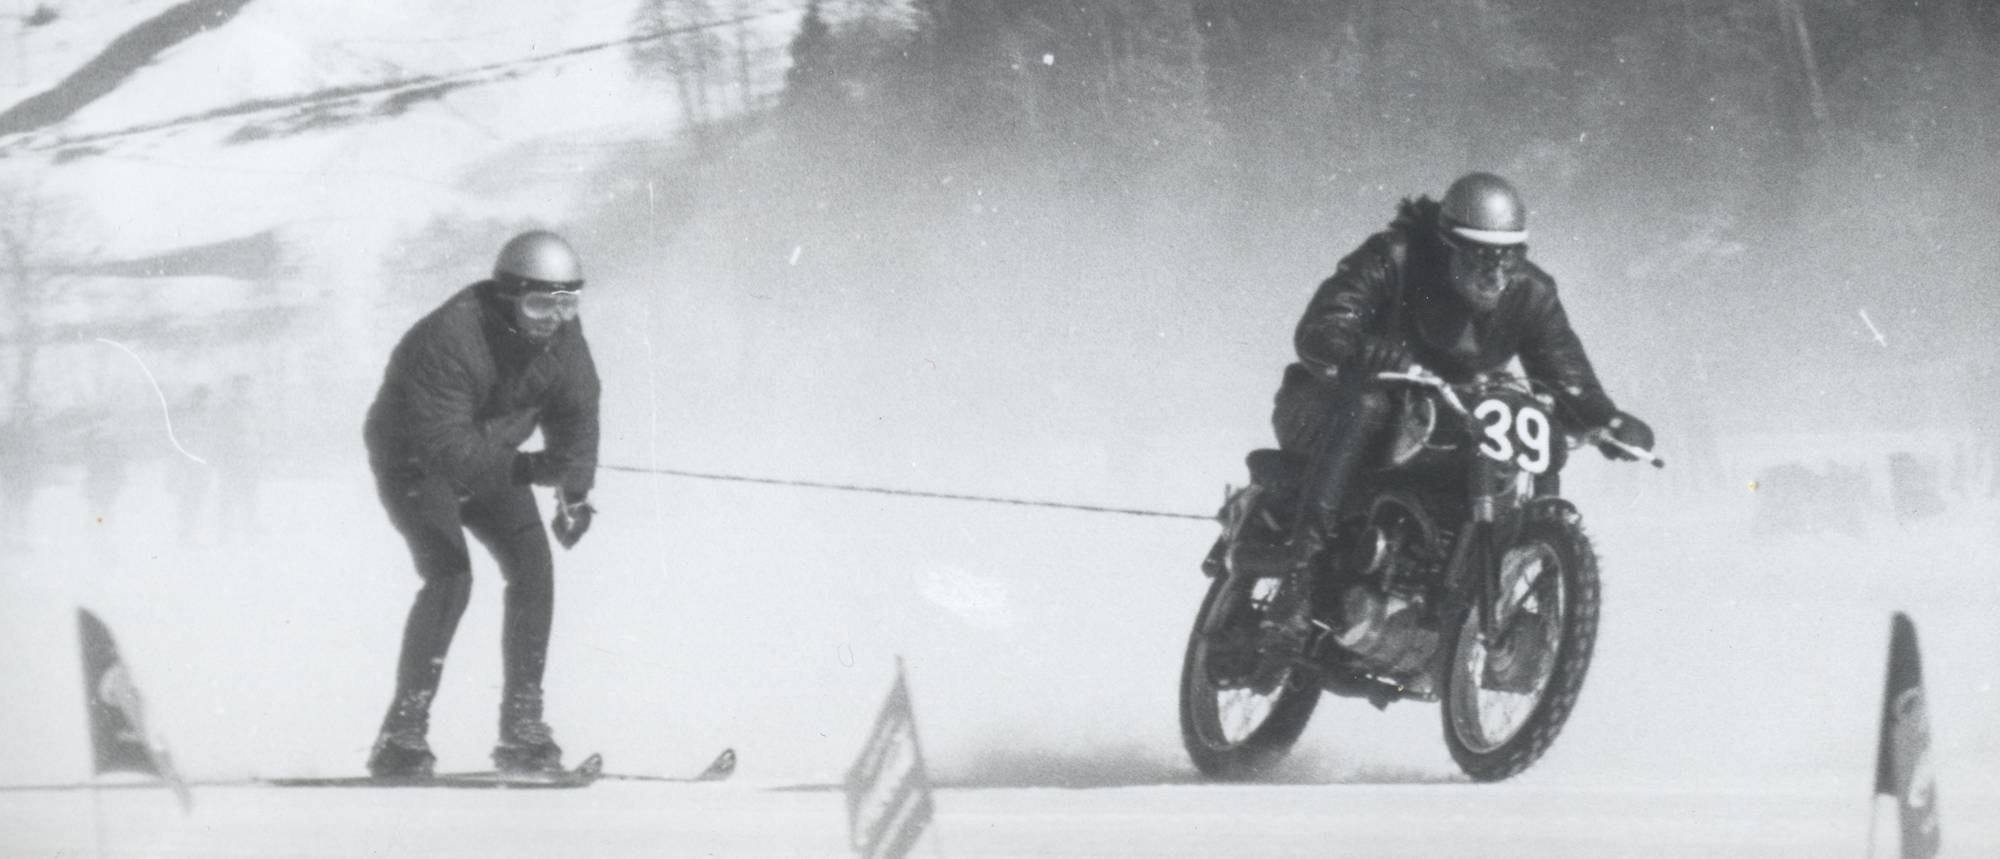 Skijoring with motordycles